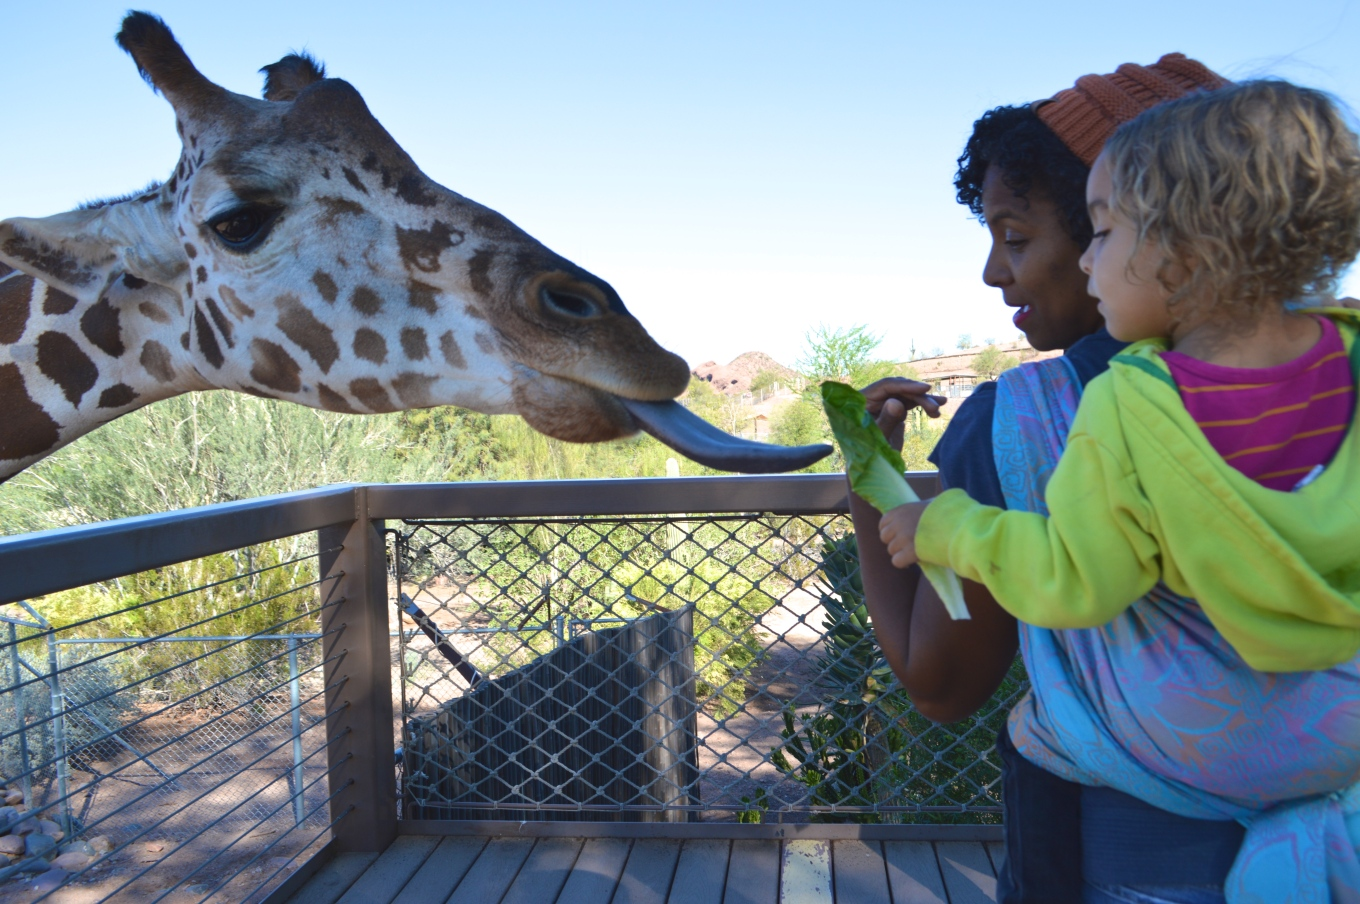 Baby holds a piece of Romaine Lettuce in hand outstretched toward a giraffe. The brown and white spotted head of the giraffe is seen with blue tongue extended reaching for the lettuce. Medium brown Momma with natural curly hair wears orange-brown knit cap and red lipstick. Her light brown, curly blond haired toddler wears a neon yellow hoodie. Baby is on Momma's back in a Double Hammock carry in a gradient orange to pink on pale blue background woven wrap with embossed jonquil flowers.